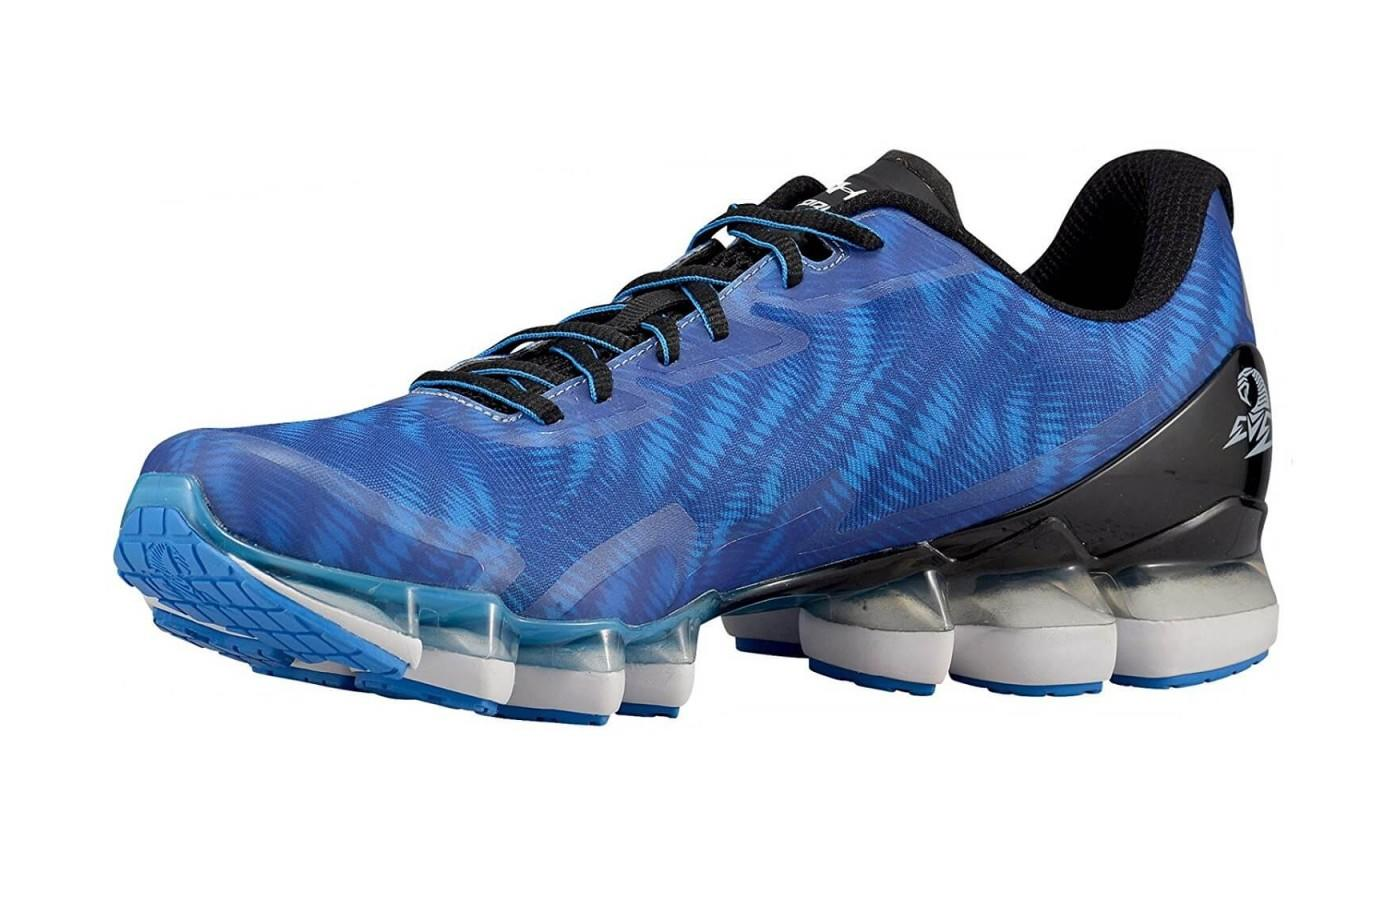 Blue version of the Under Armour Scorpio 2